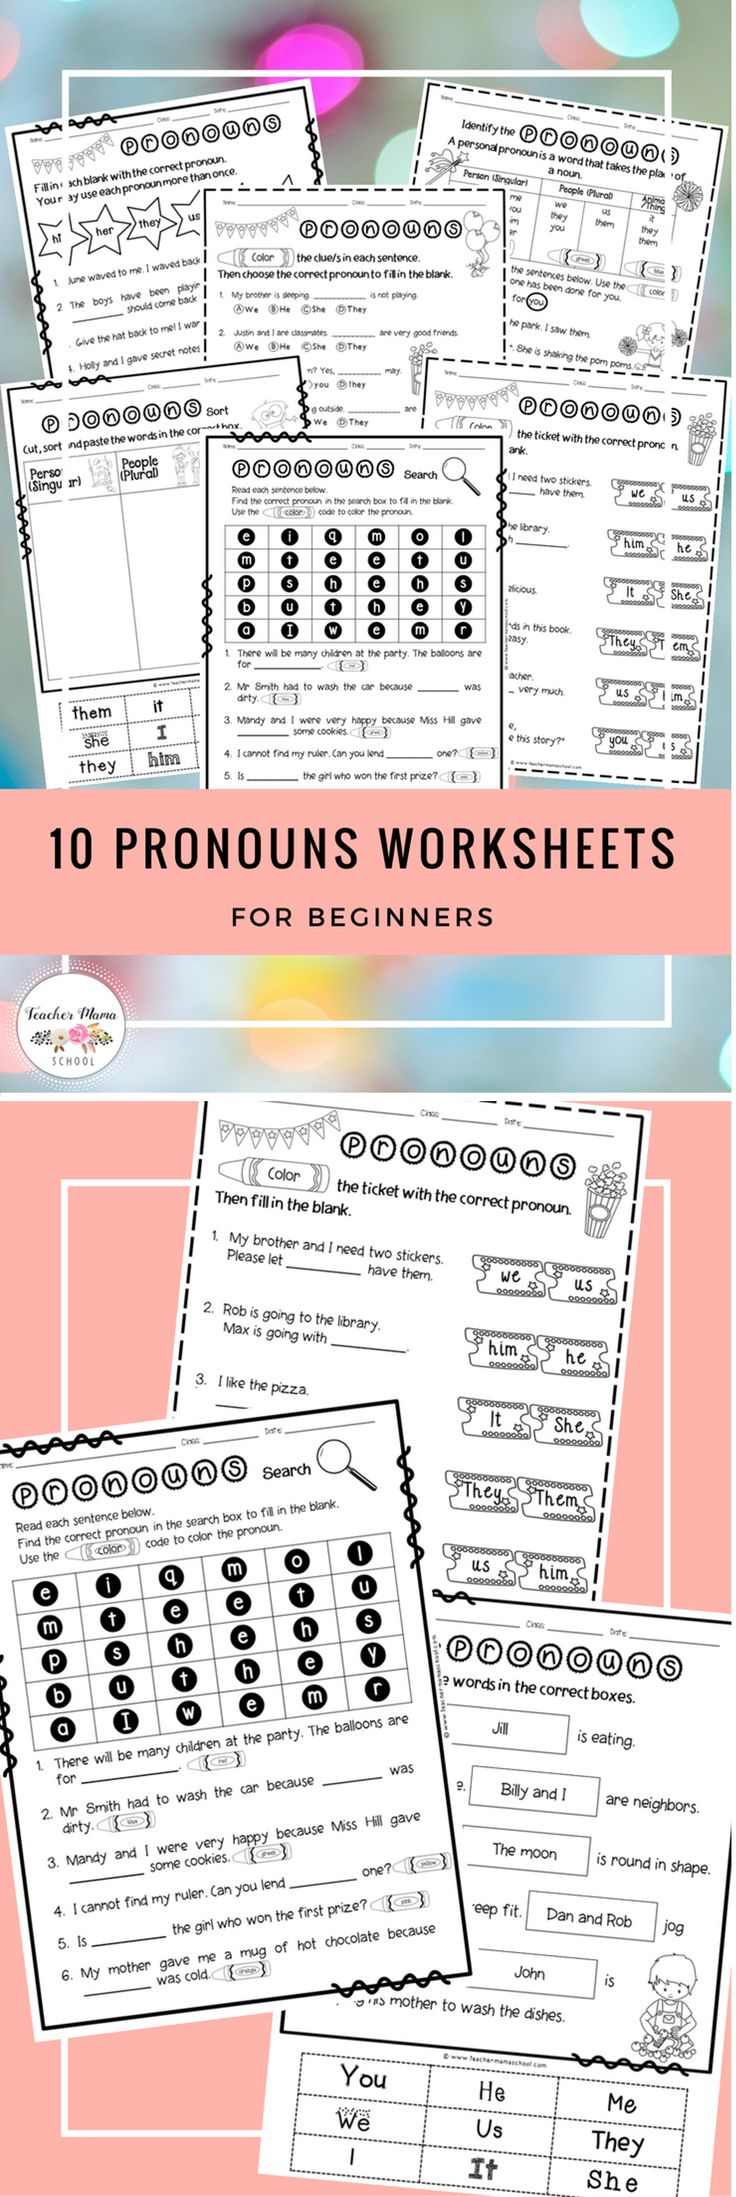 A set of 10 PERSONAL PRONOUNS worksheets which are suitable for beginners and are appealing to the younger learners aged between 6 to 8 years old. It includes a variety of worksheet types.